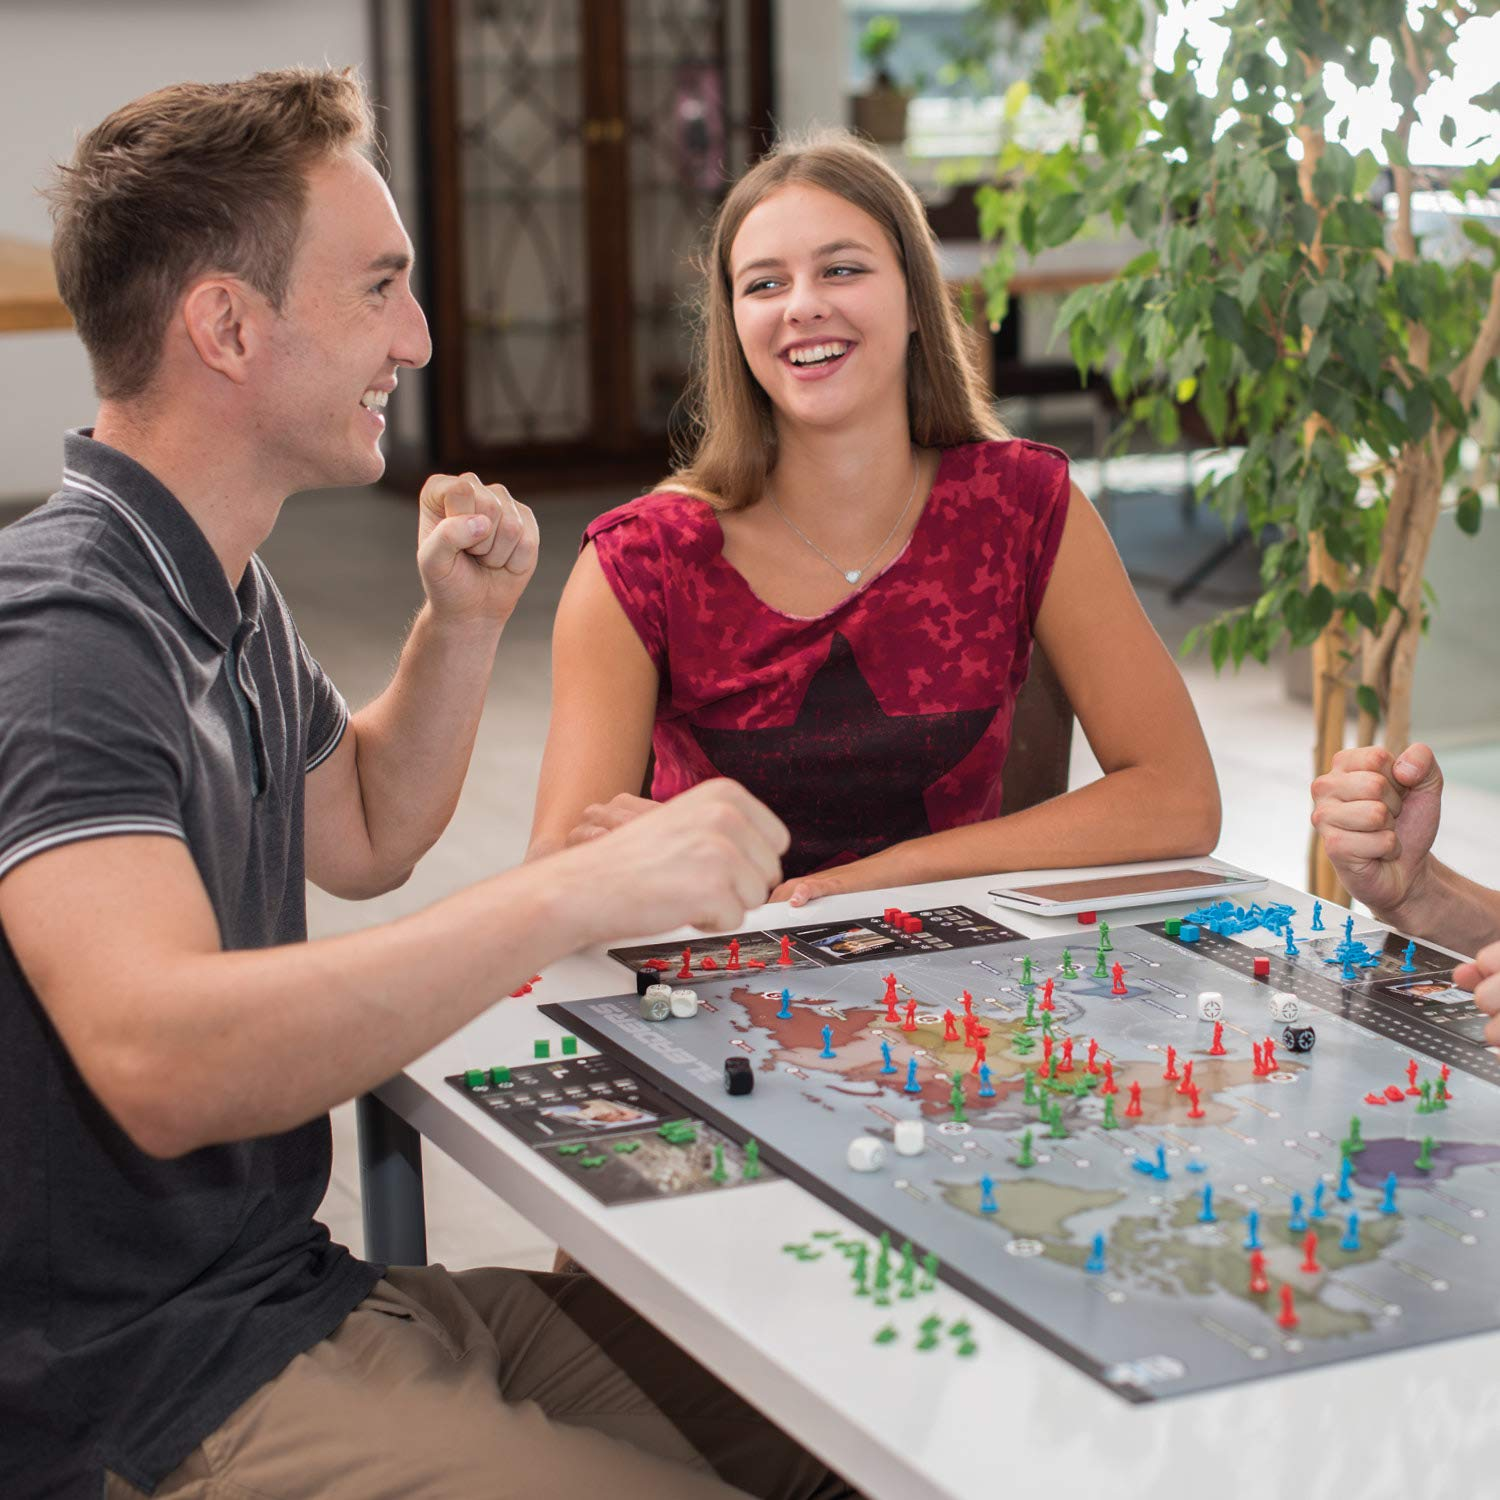 Rudy Games - Leaders 2019 - Interactive Cold War Strategy Board Game with App - for Children 10 Years and Up and Adults by Rudy Games (Image #3)